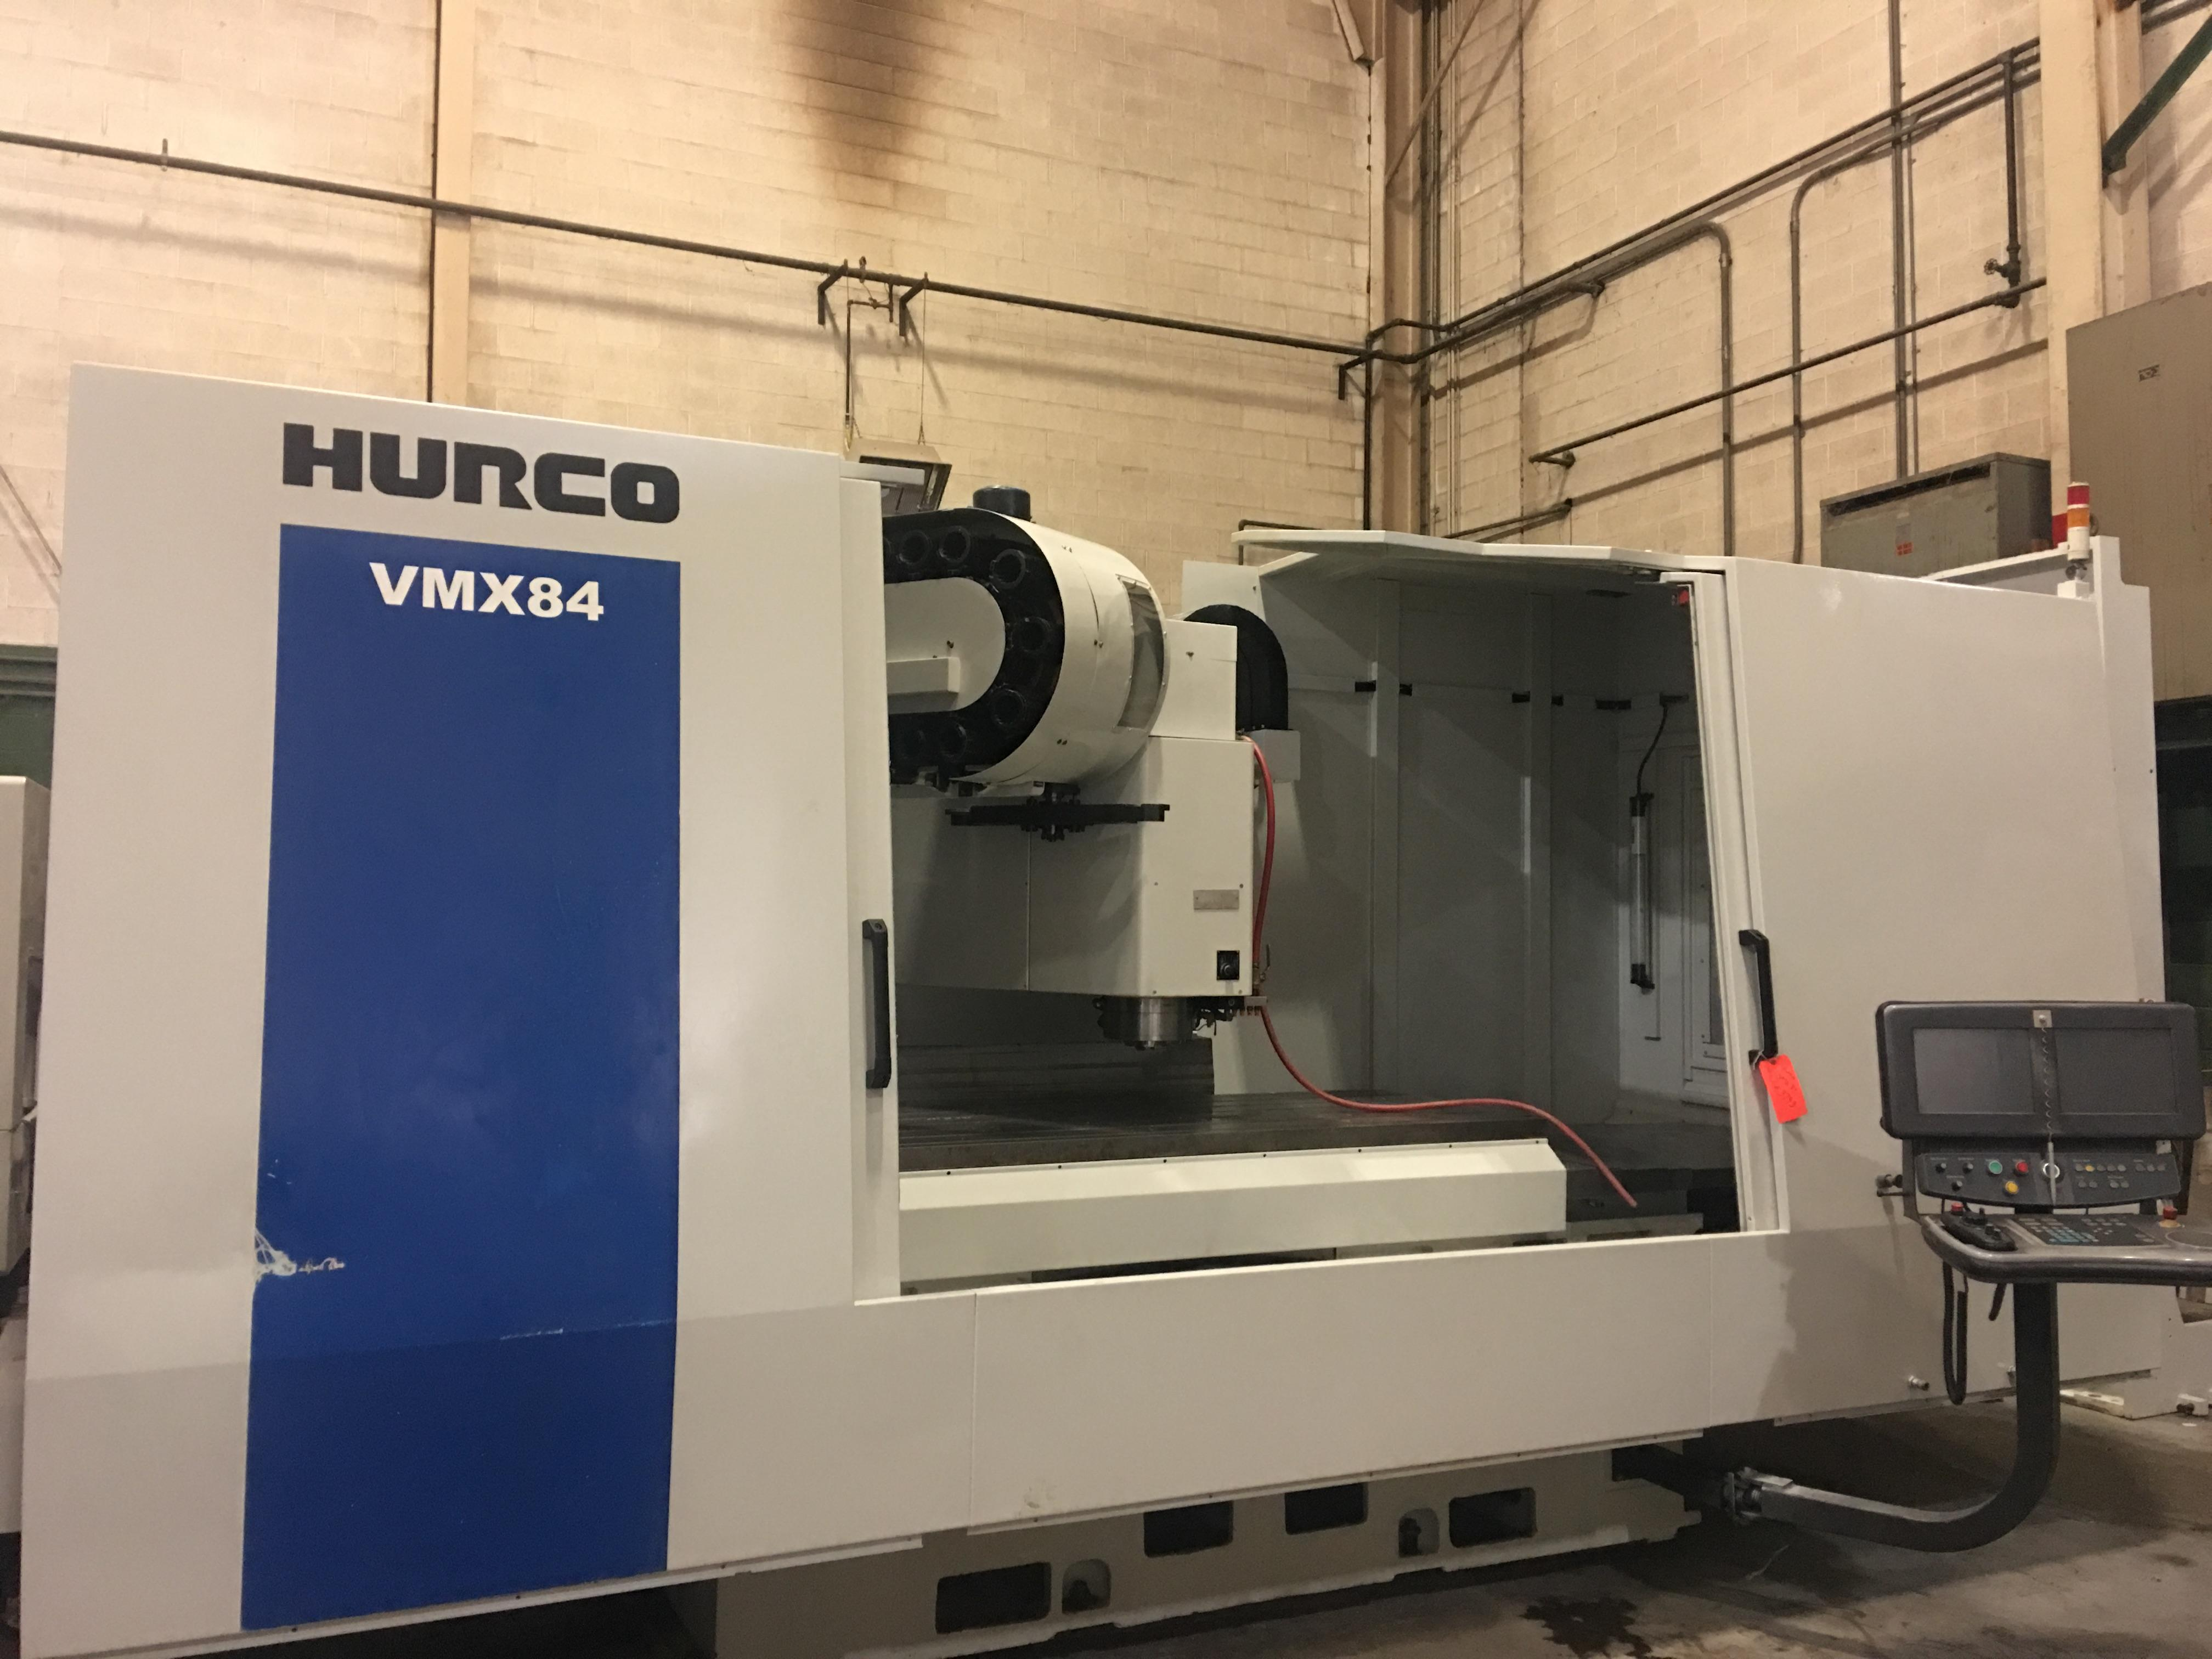 HURCO VMX 84 - Machining Centers, Vertical | Machine Hub